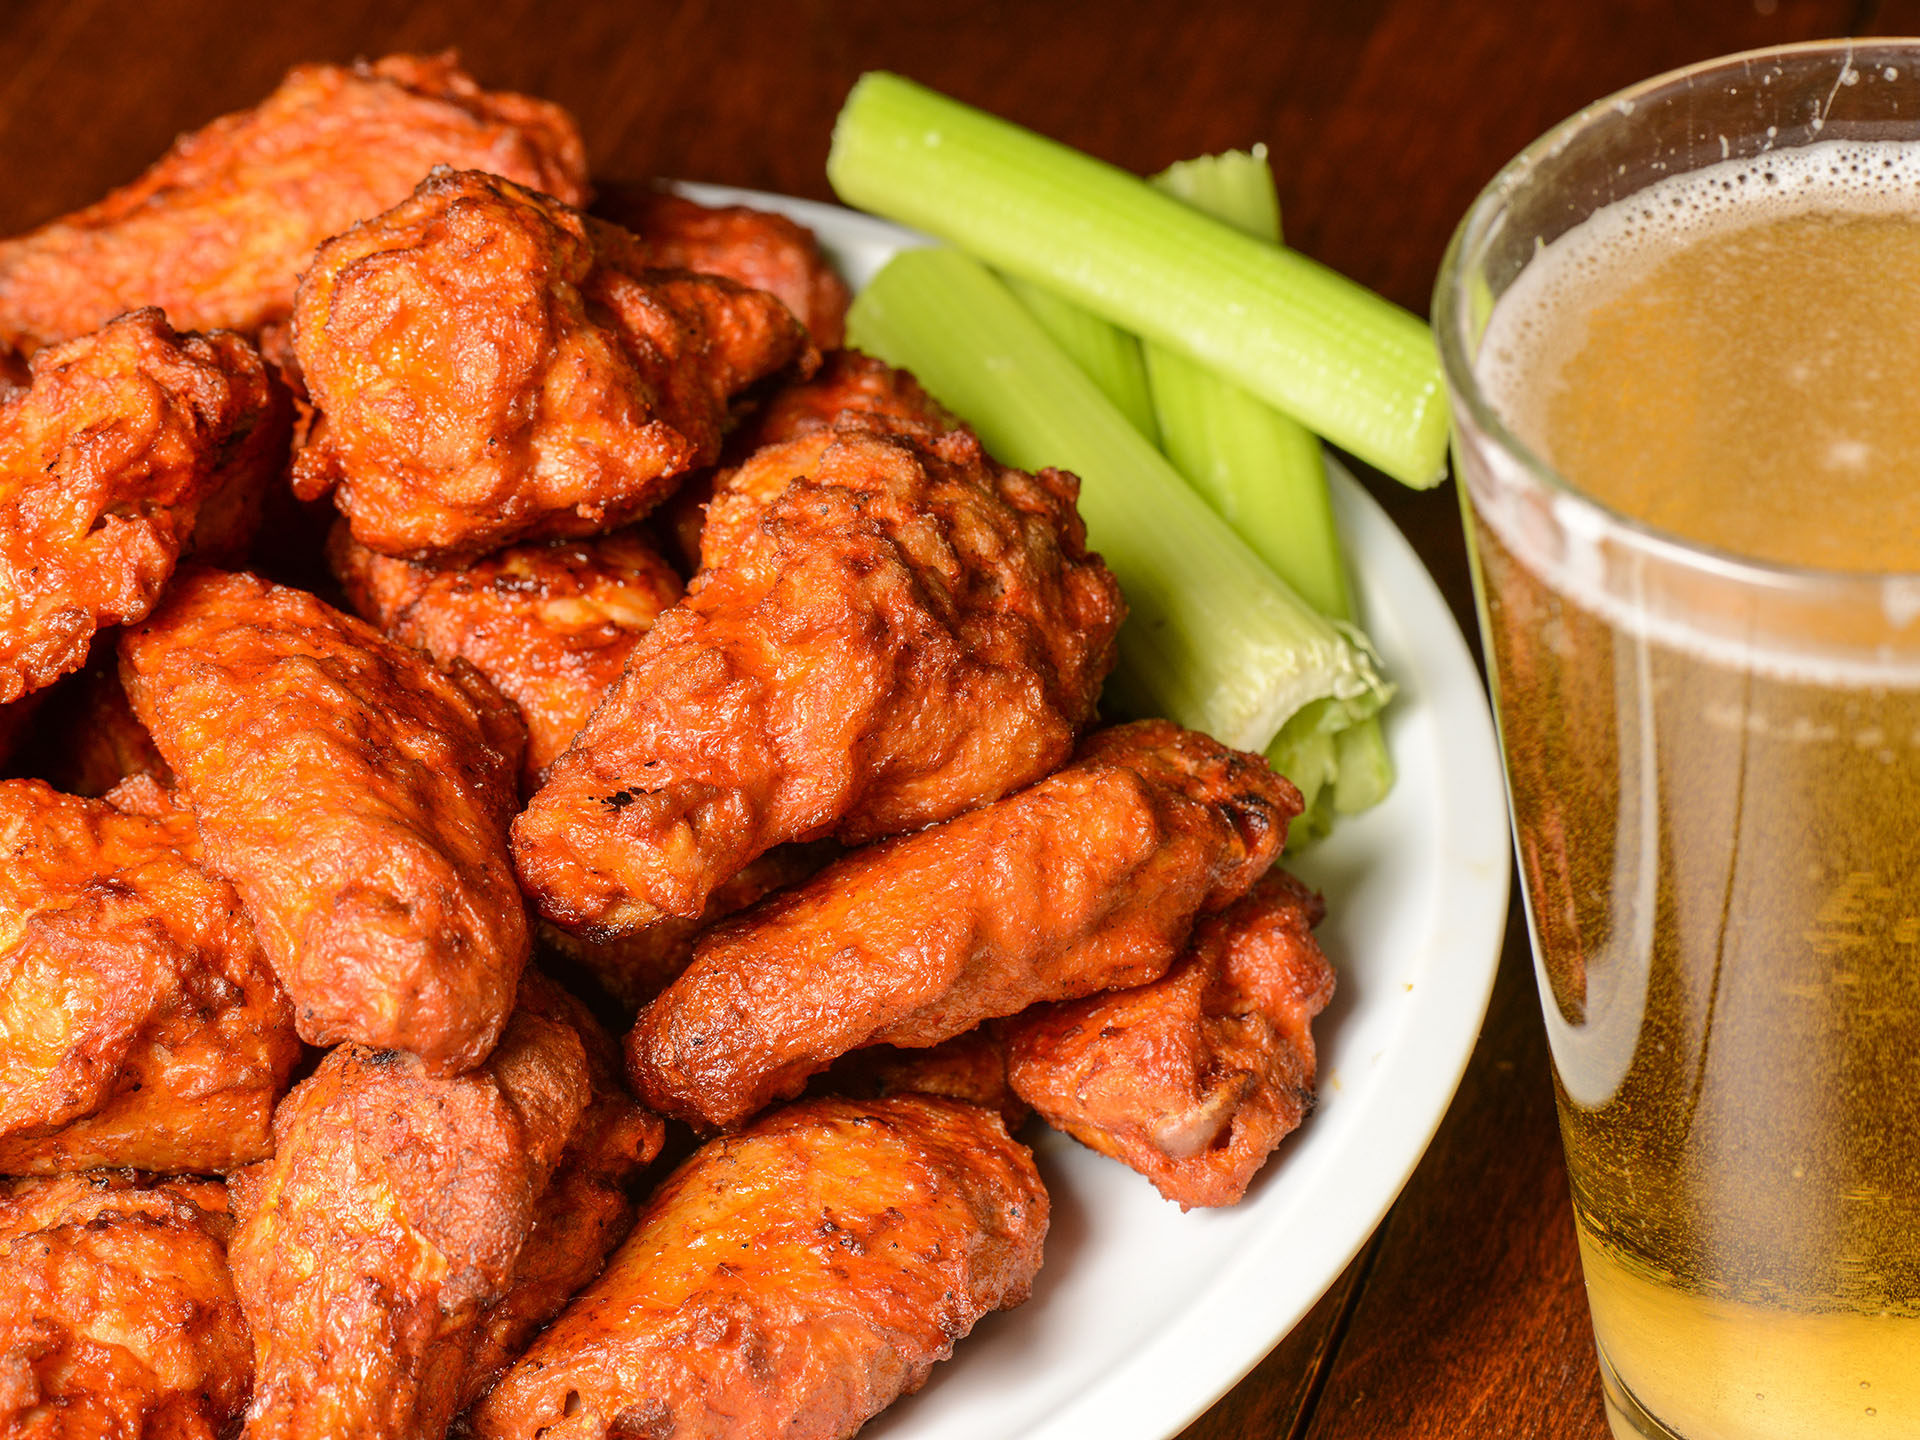 Daly's Buffalo Wings